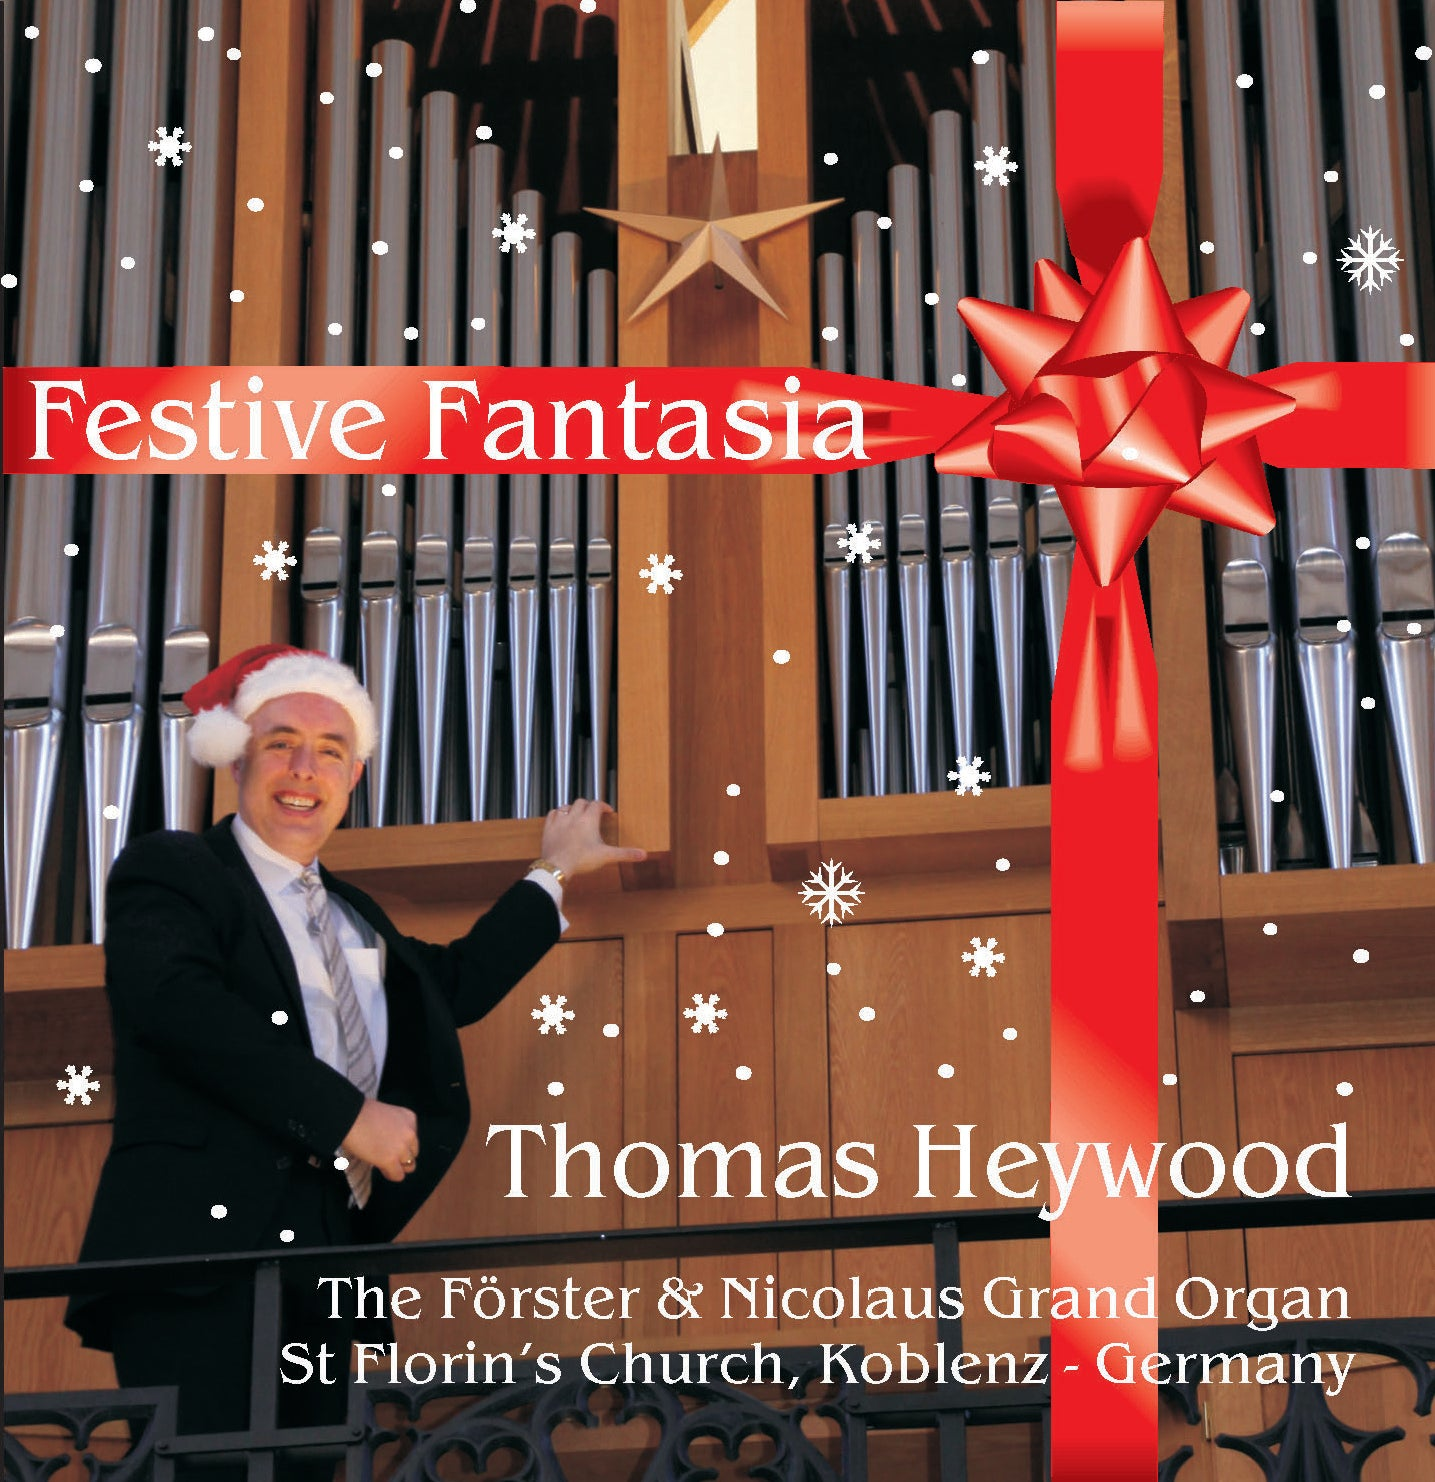 Festive Fantasia (CD) | Thomas Heywood | Concert Organ International